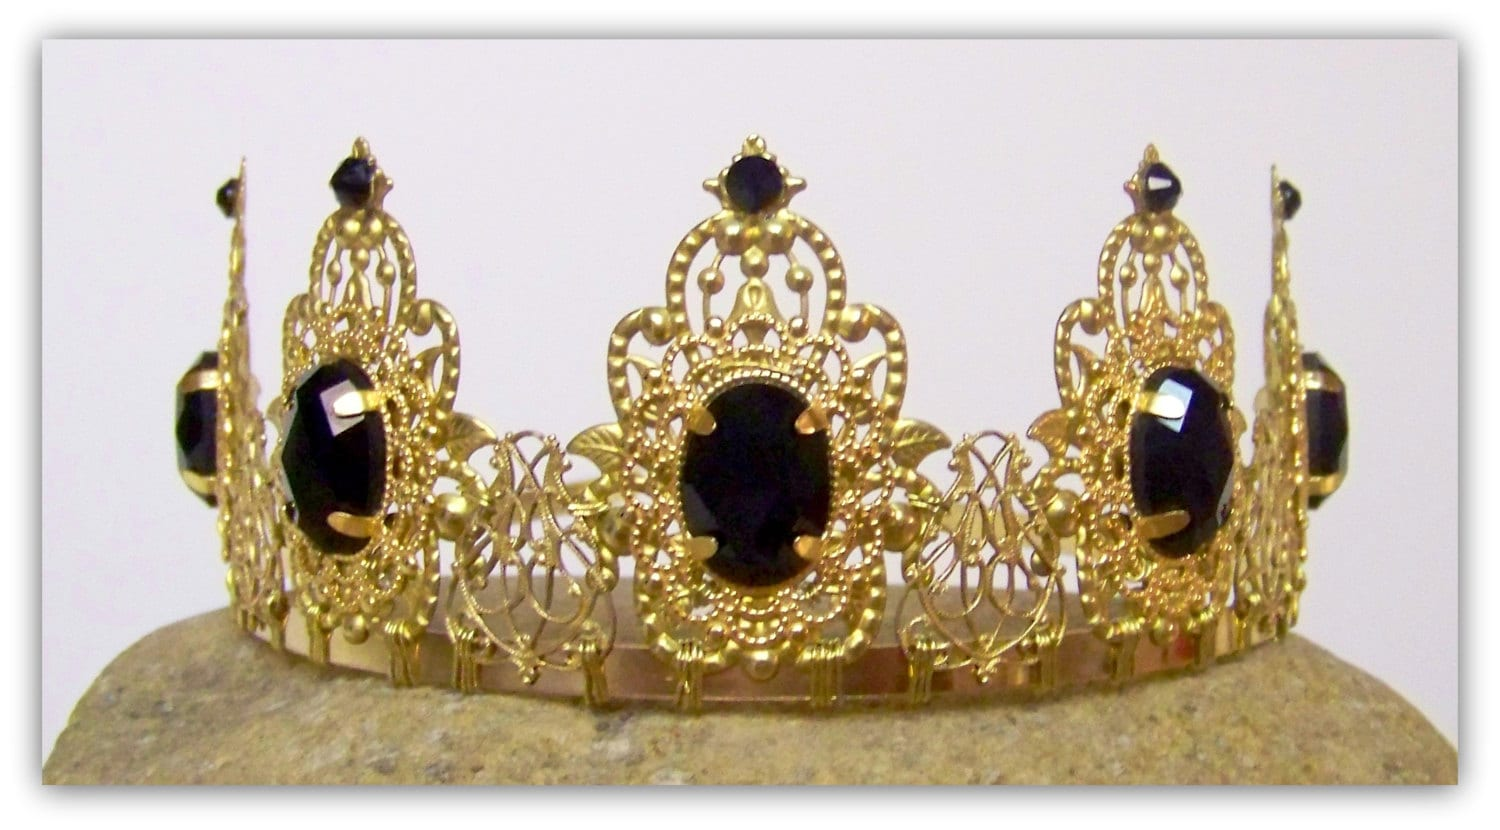 Medieval crown renaissance crown medieval jewelry crown for Mary queen of scots replica jewelry